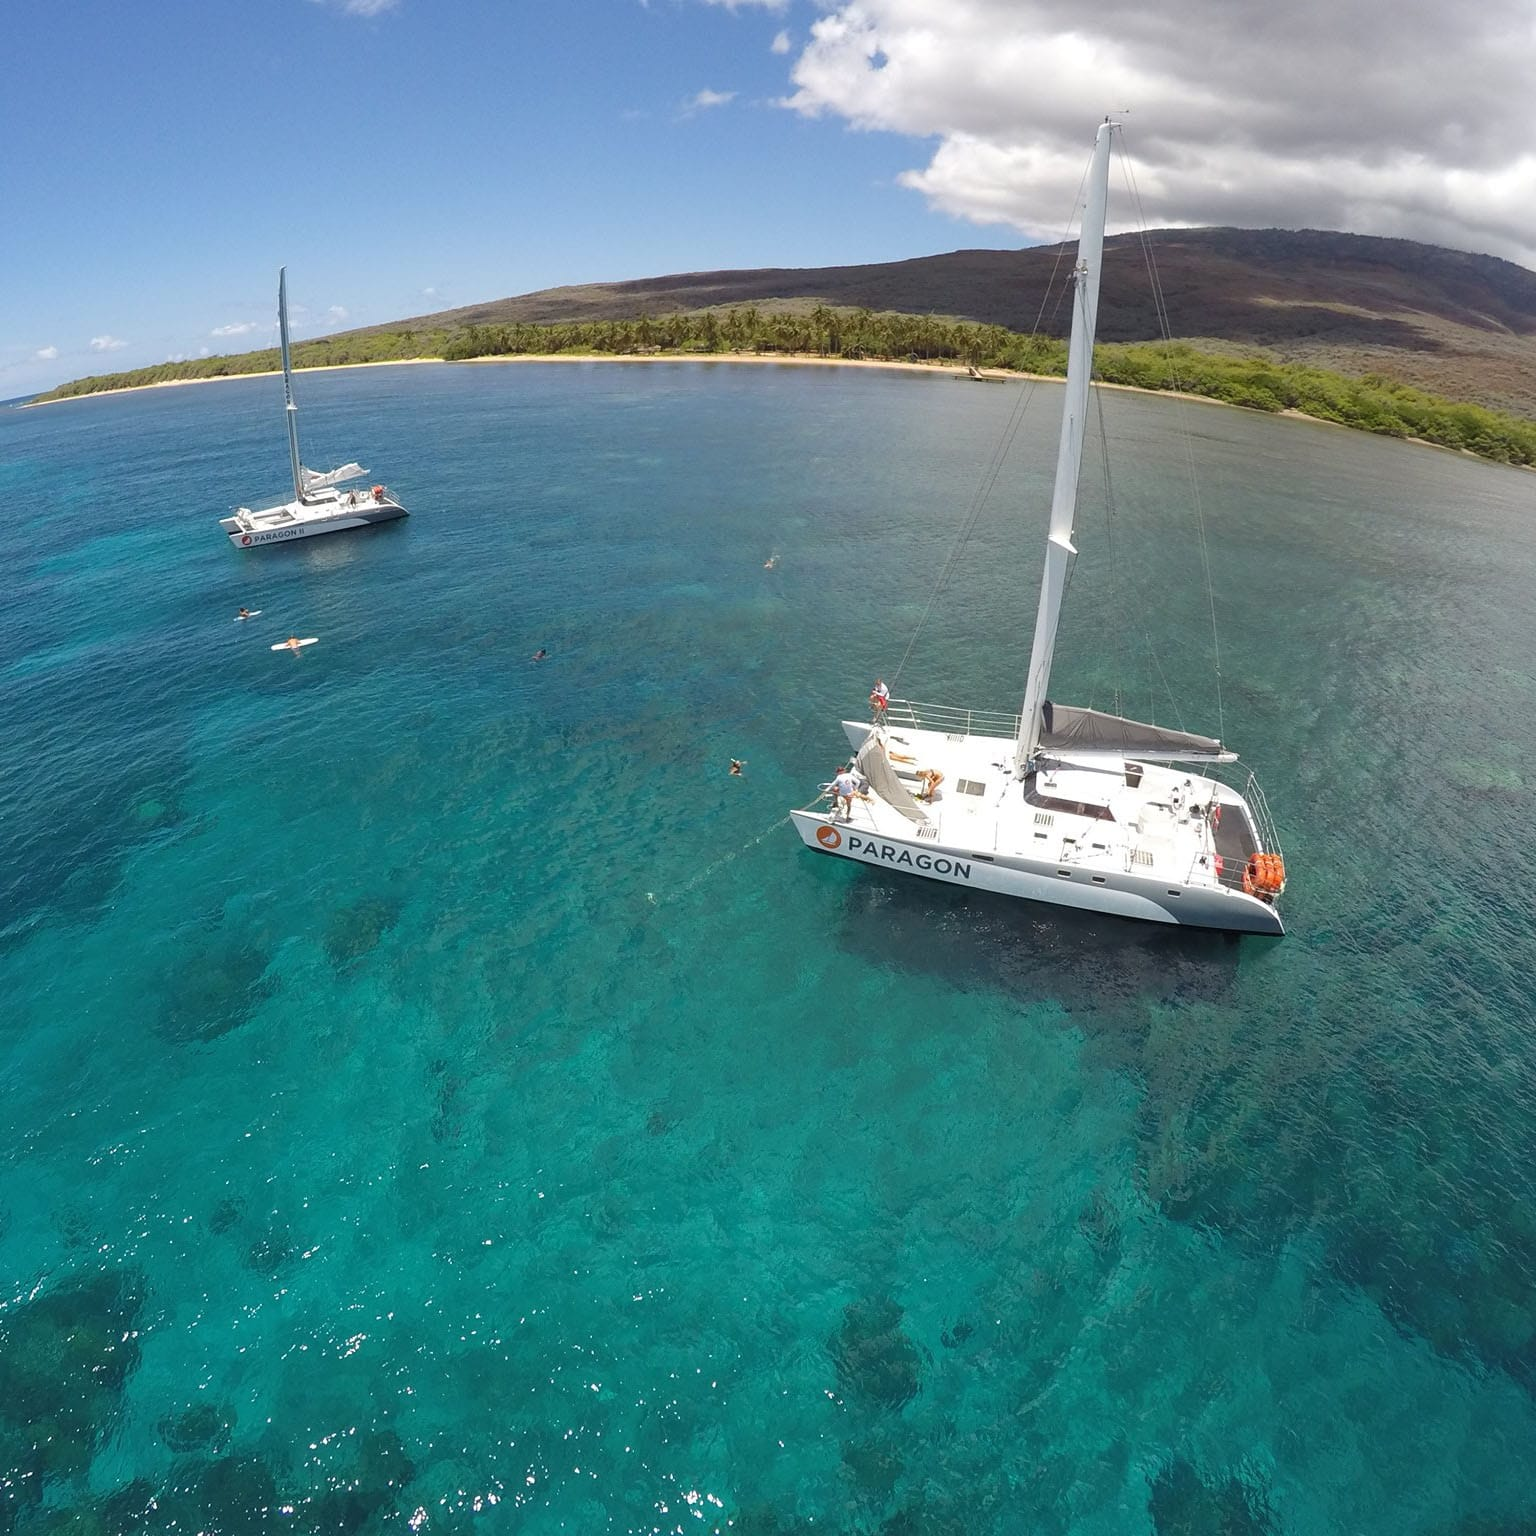 Paragon Sailing – Lahaina Sunset Sail